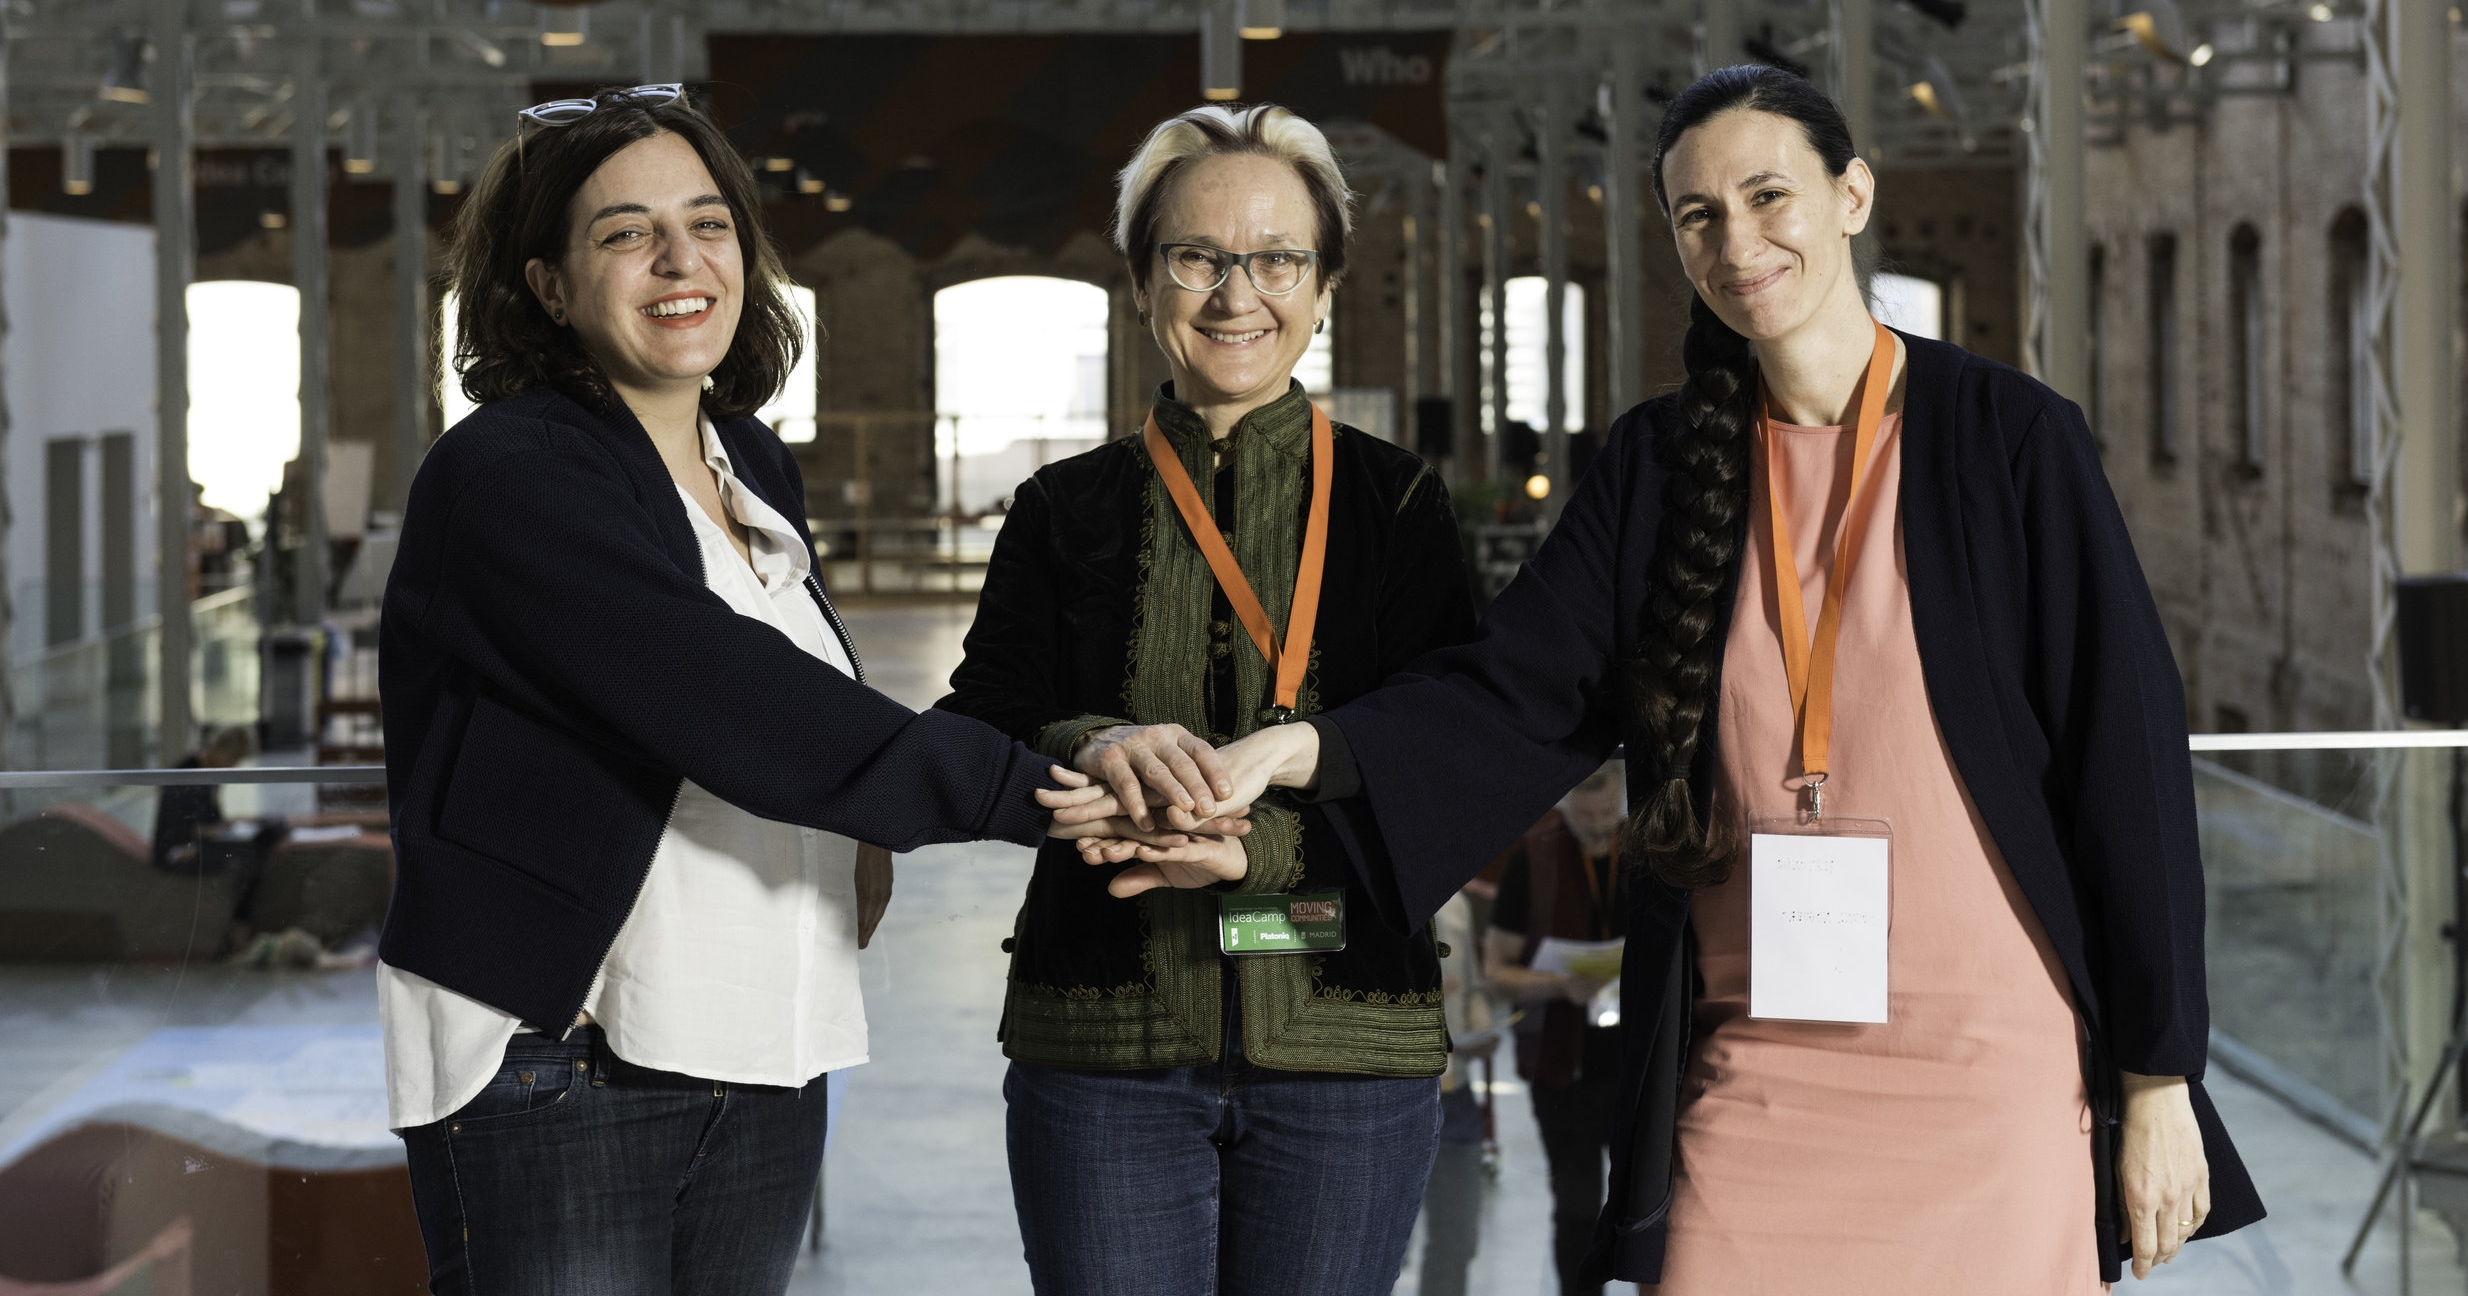 Celia Mayer (Madrid City Counselor for Sports and Culture), Katherine Watson (ECF Director) and Susana Noguero (Managing Director of   Platoniq).   Photo by César Lucas Abreu